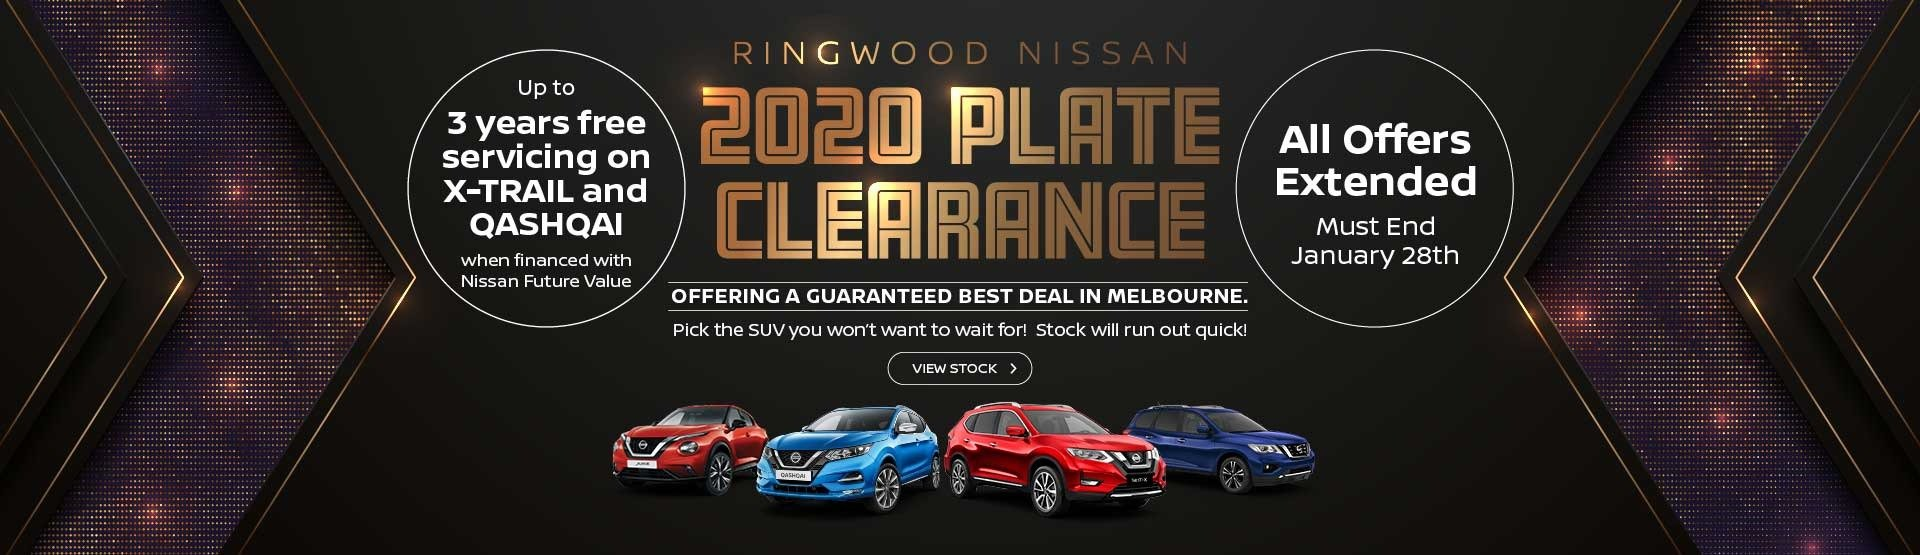 2020 Plate Clearance